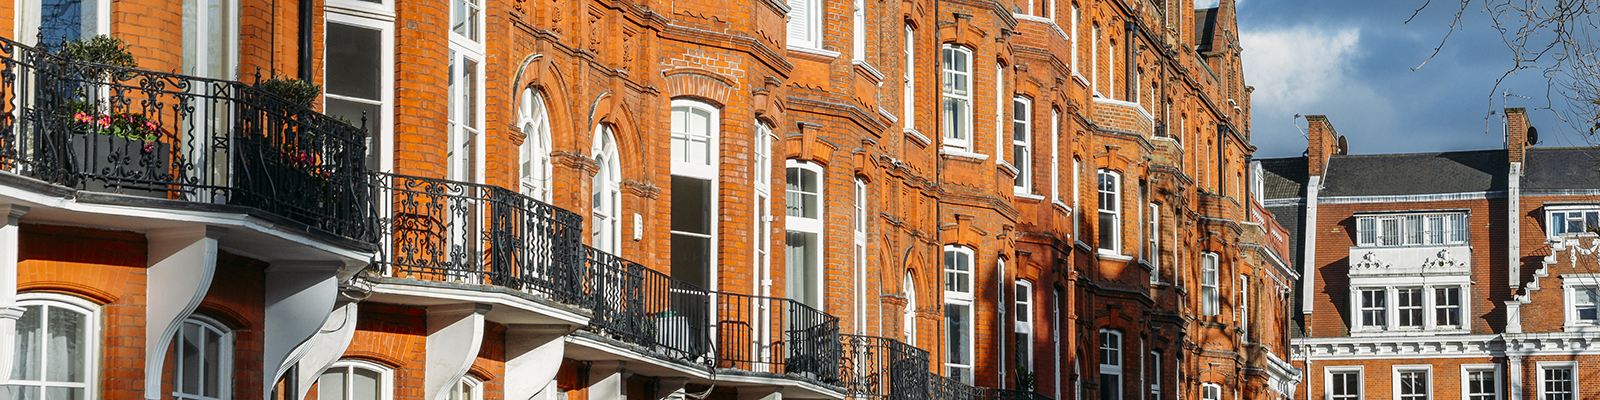 Expensive Edwardian block of period red brick apartments ...